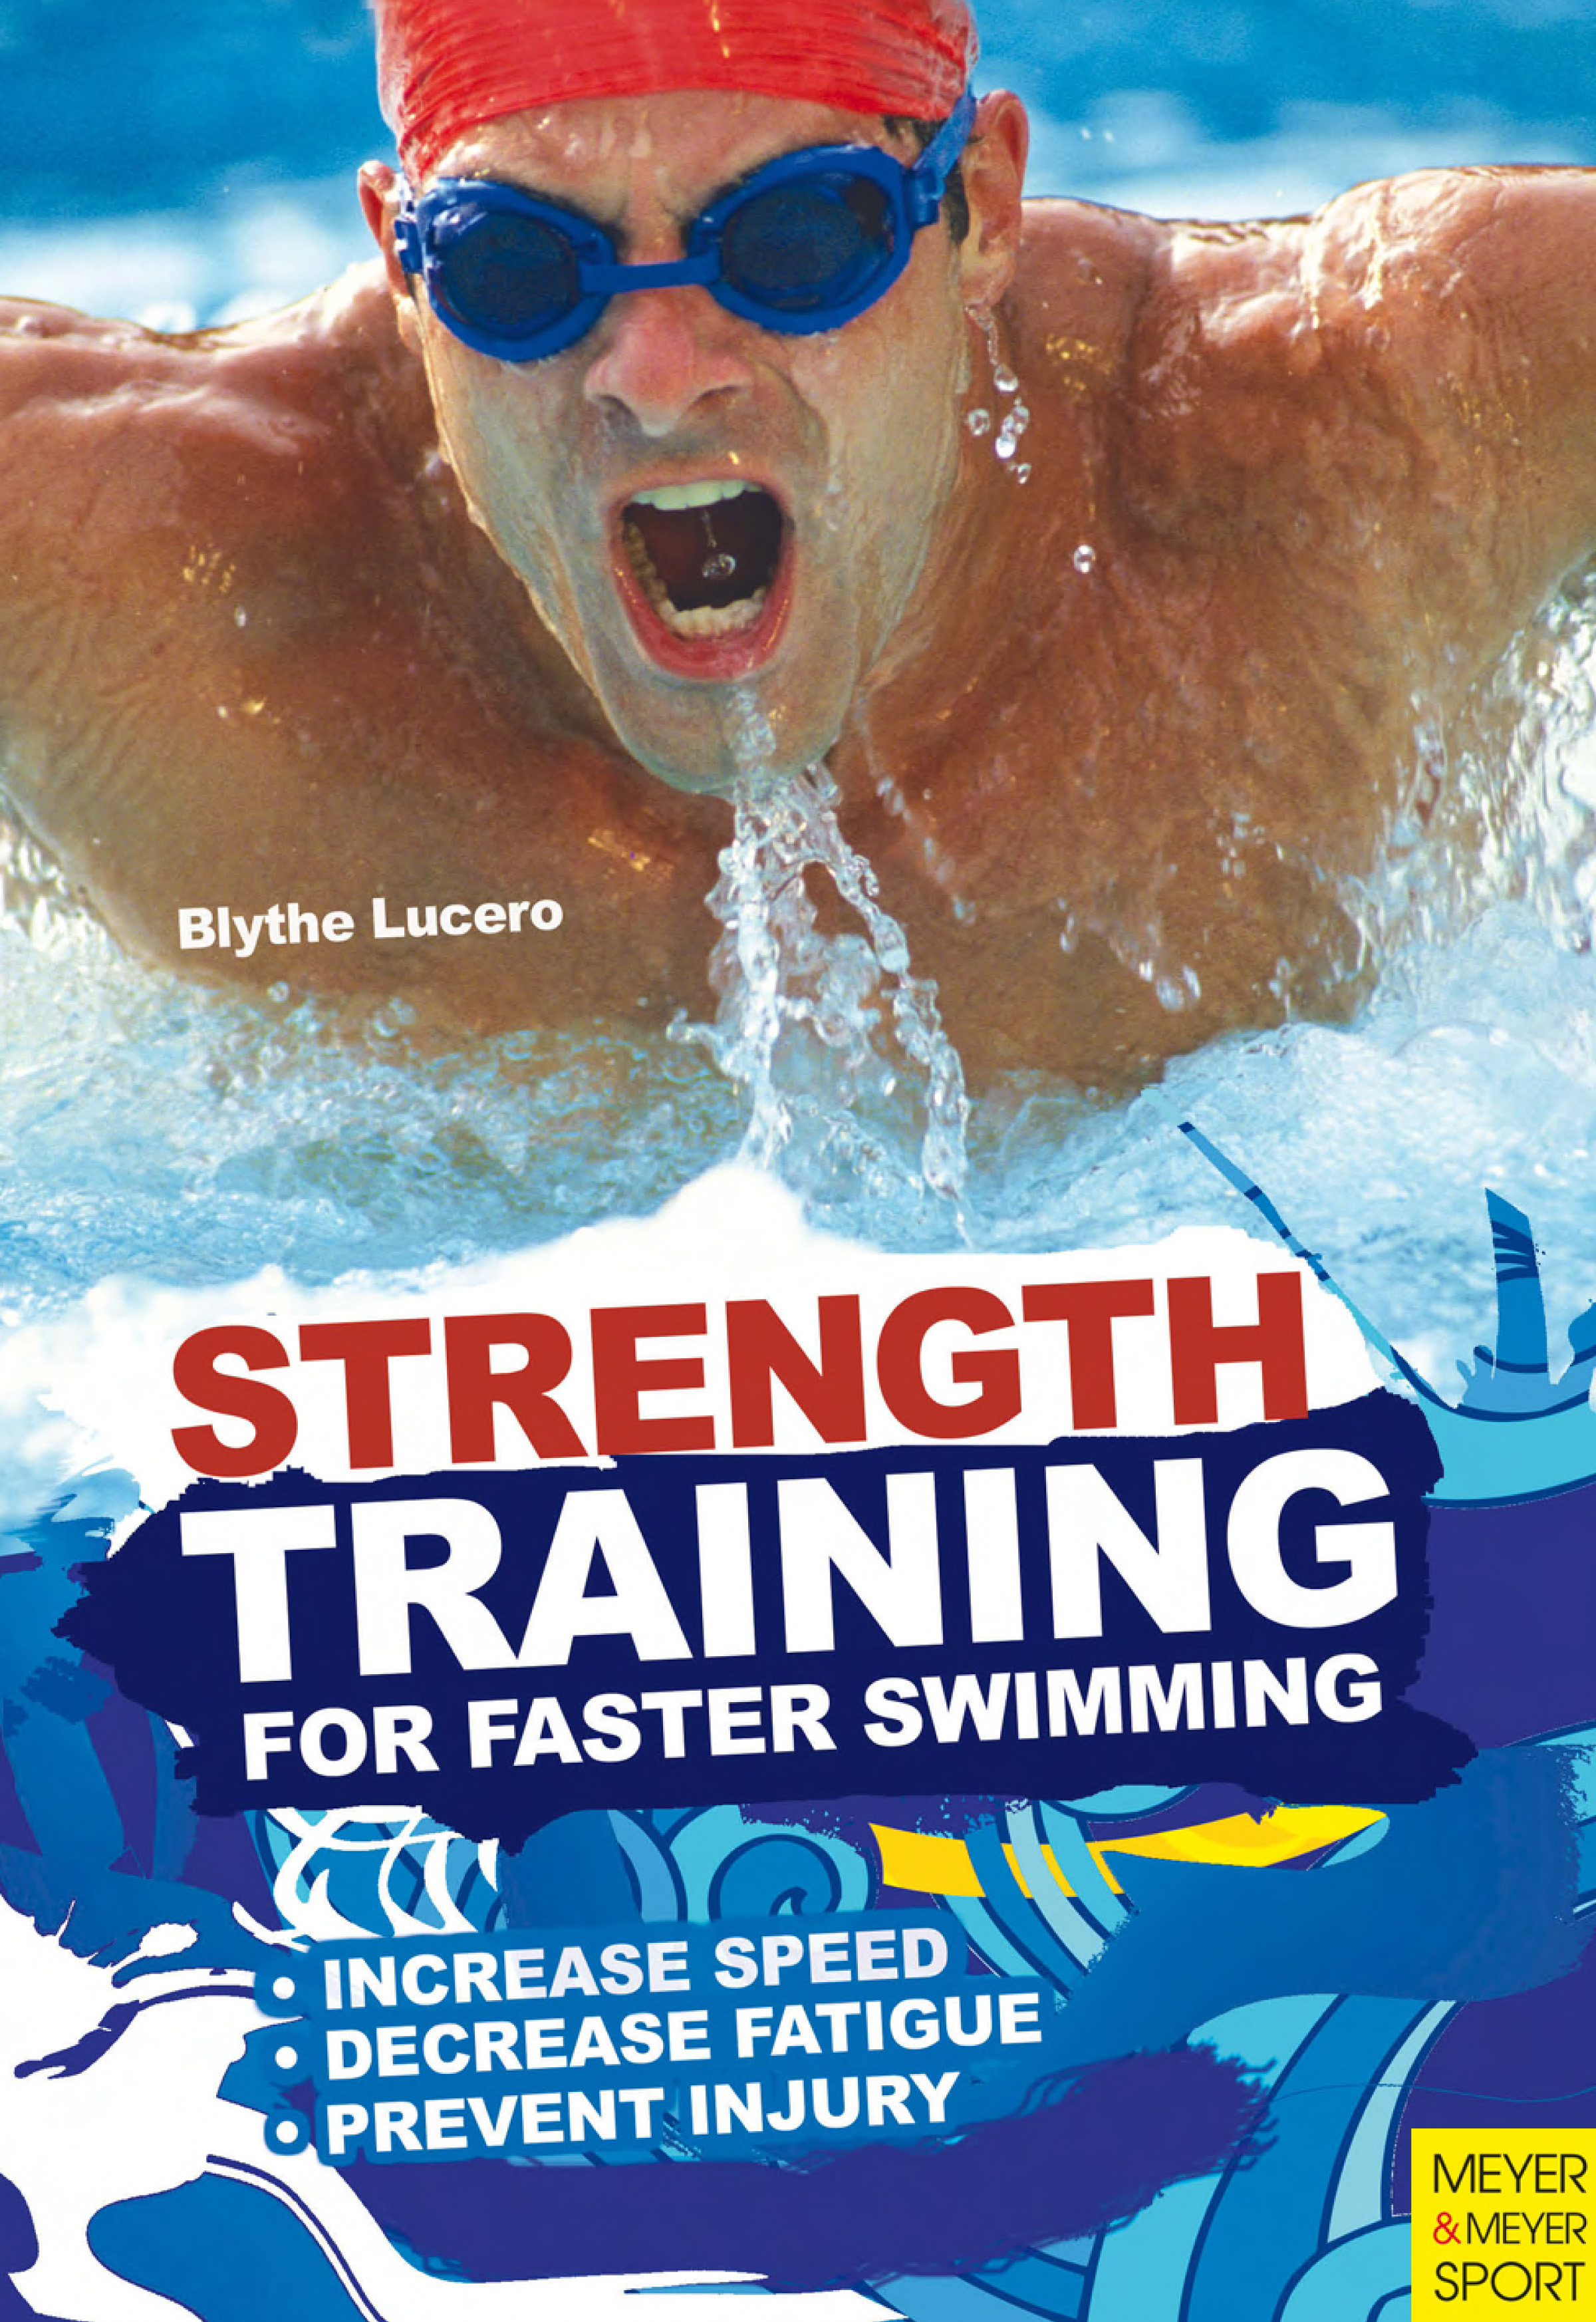 Blythe Lucero Strength Training for Faster Swimming